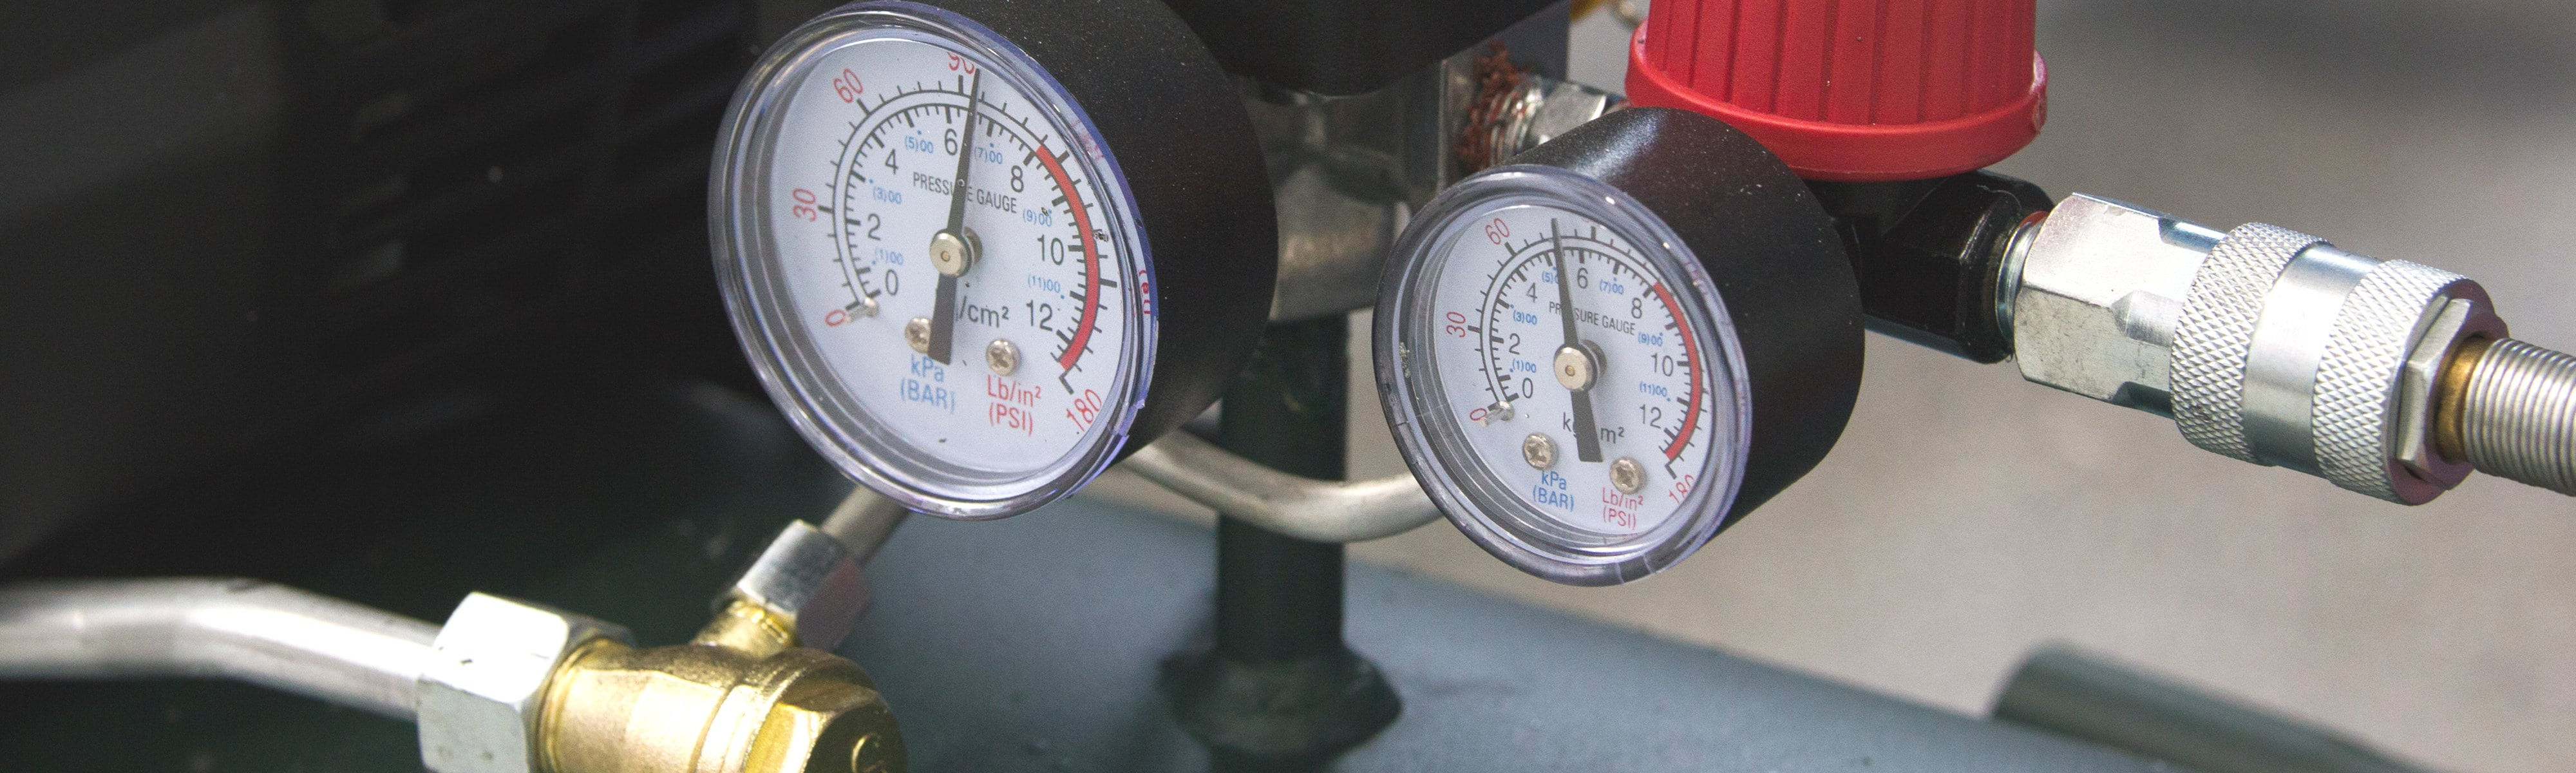 Maintenance gauges for heating and cooling equipment.